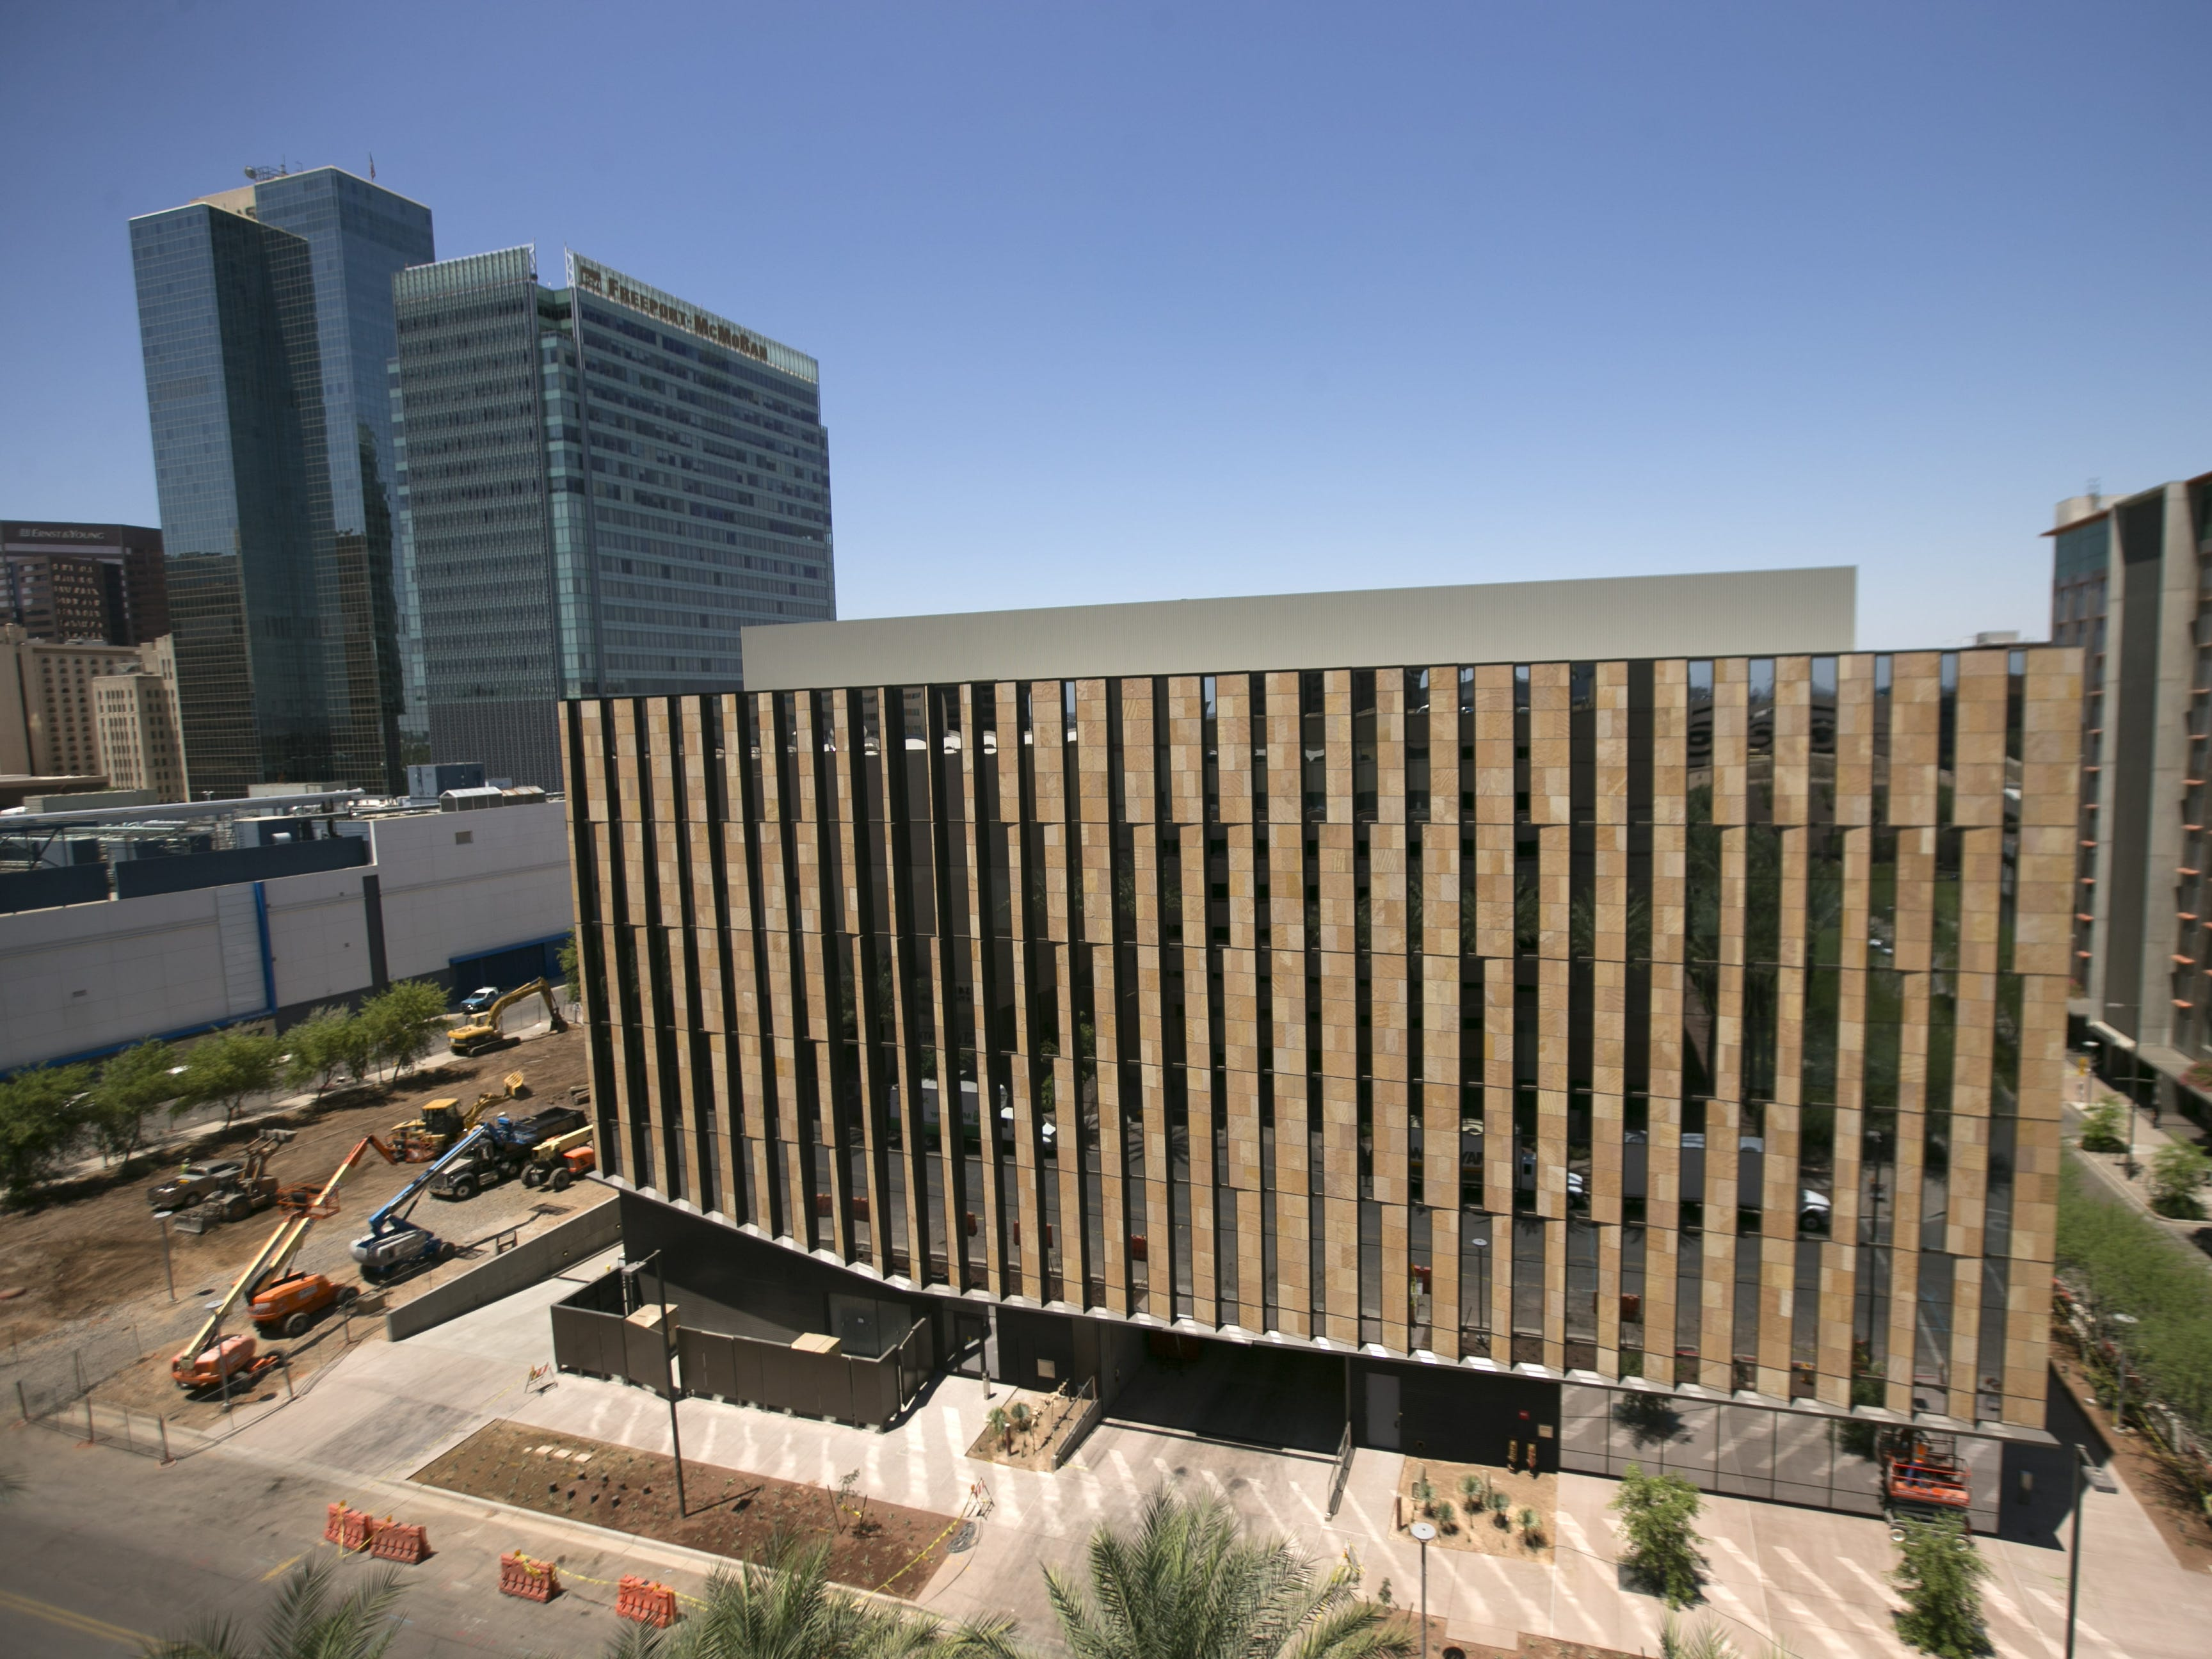 The Beus Center for Law and Society  of the Sandra Day O'Connor College of Law at Arizona State University in downtown Phoenix as seen on June 22, 2016.